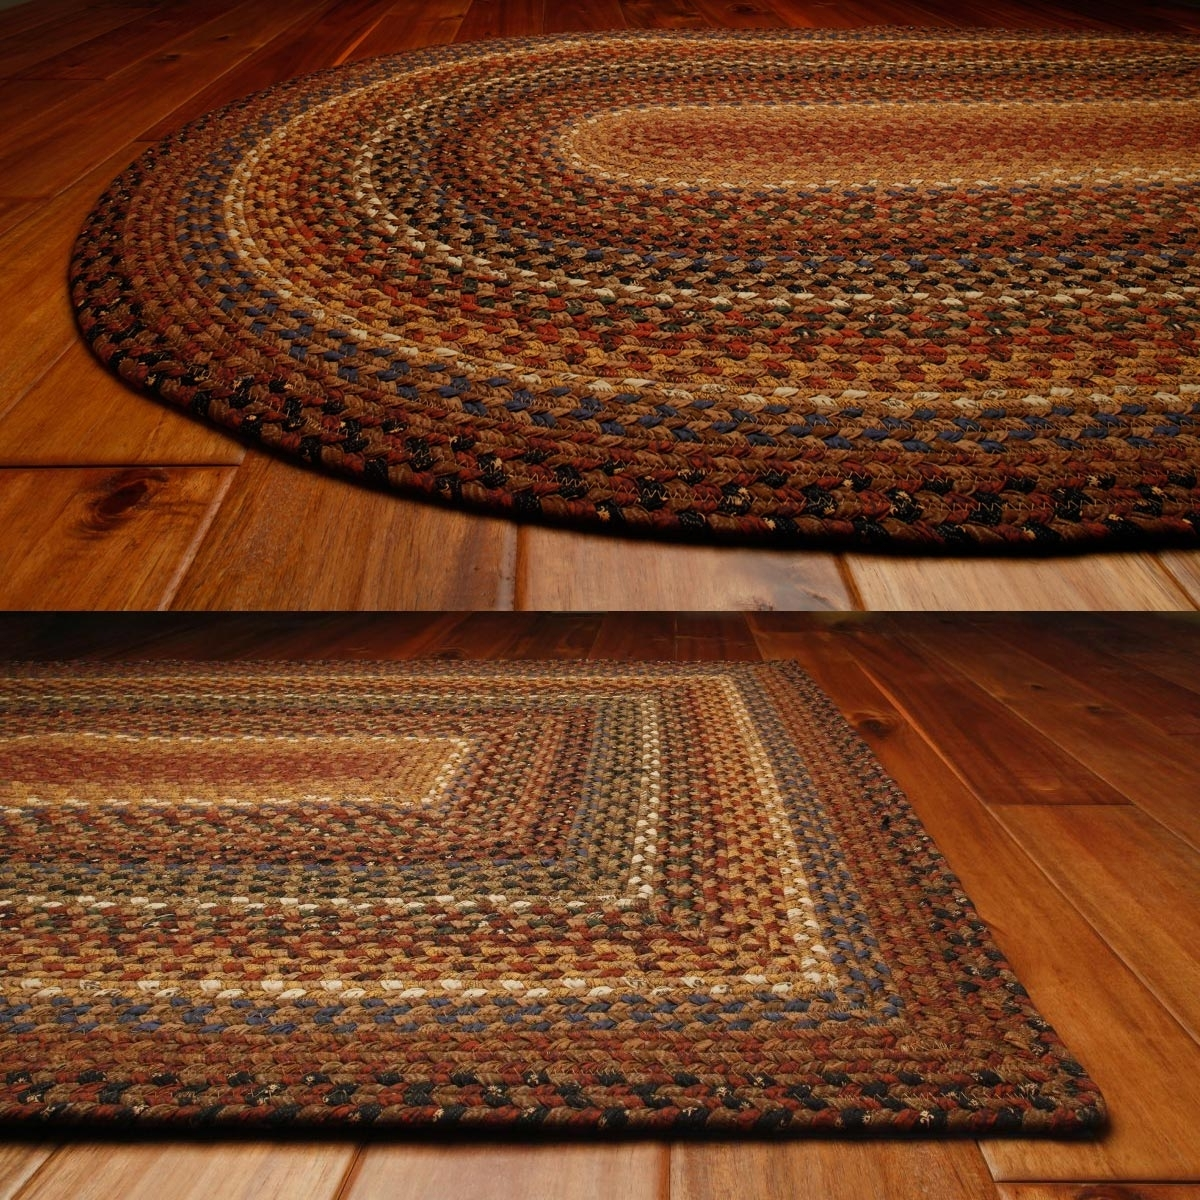 Cotton Braided Rugs: Primitive Home Decors Intended For Buy Braided Rugs For Less (View 8 of 10)